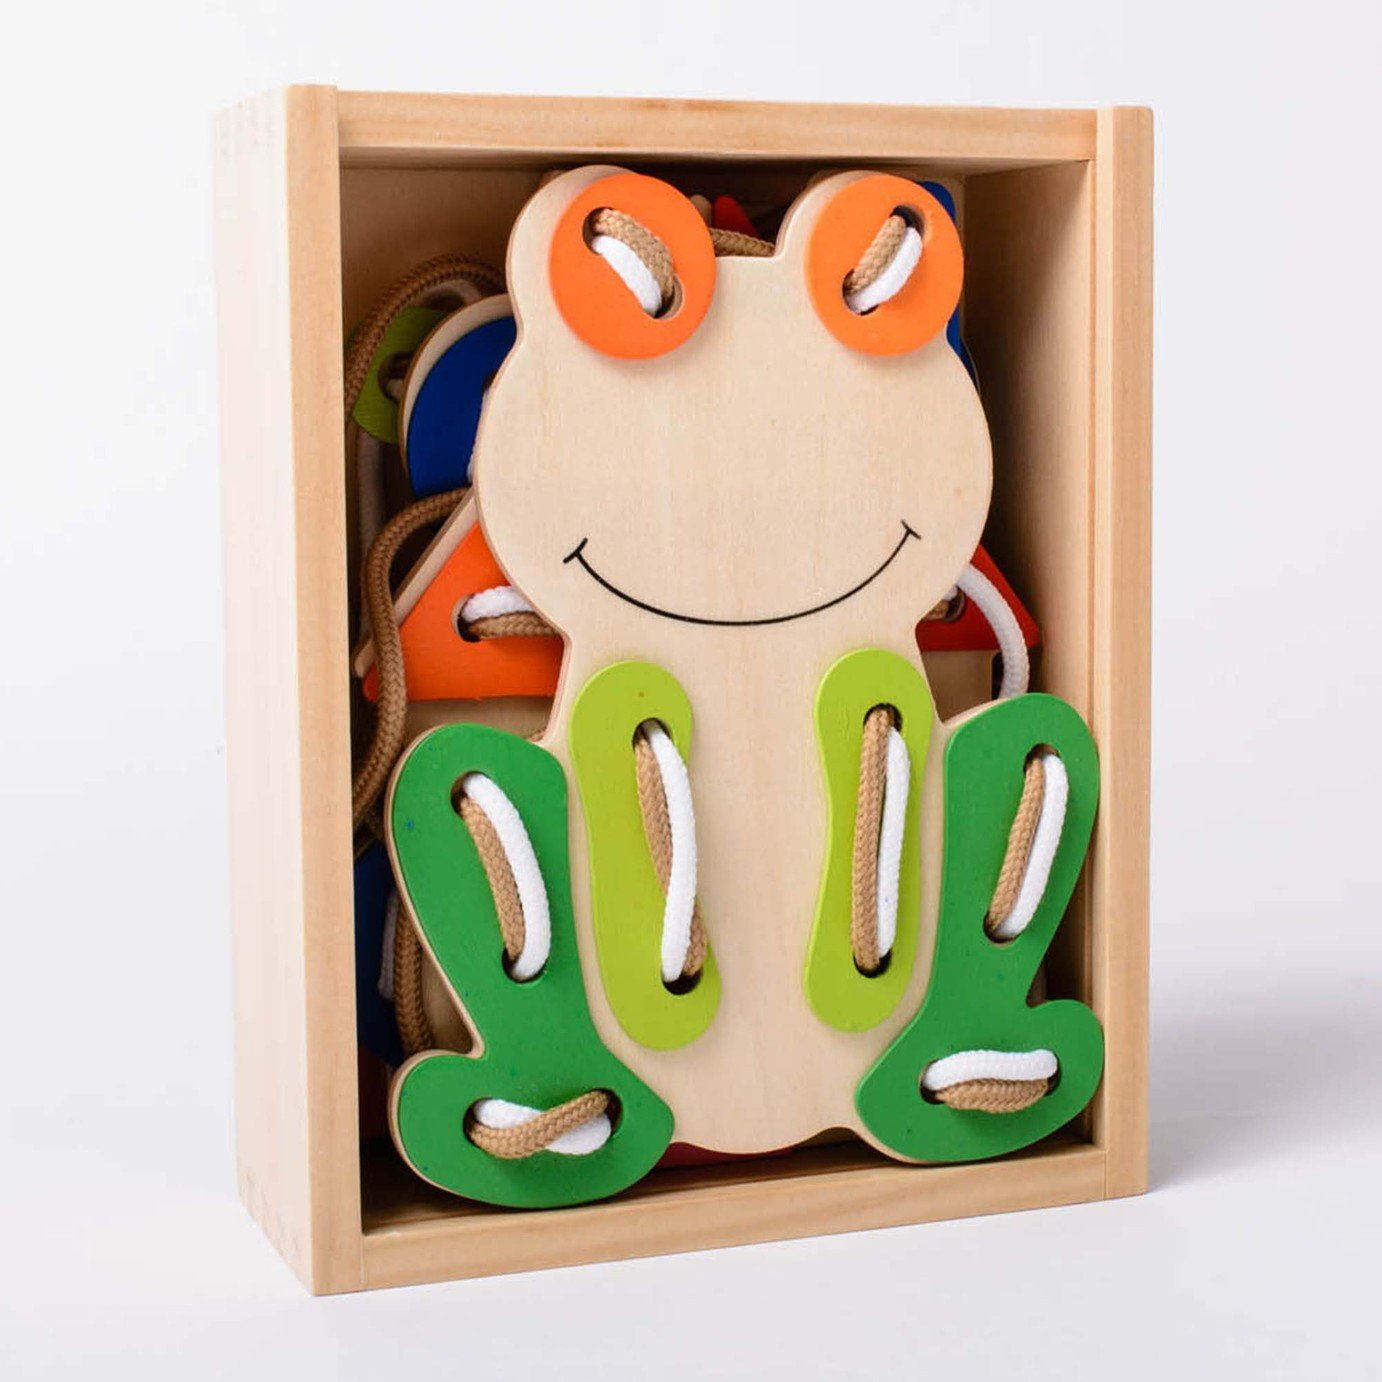 Image of EDUK8 Wooden Toy Matching and Threading Set